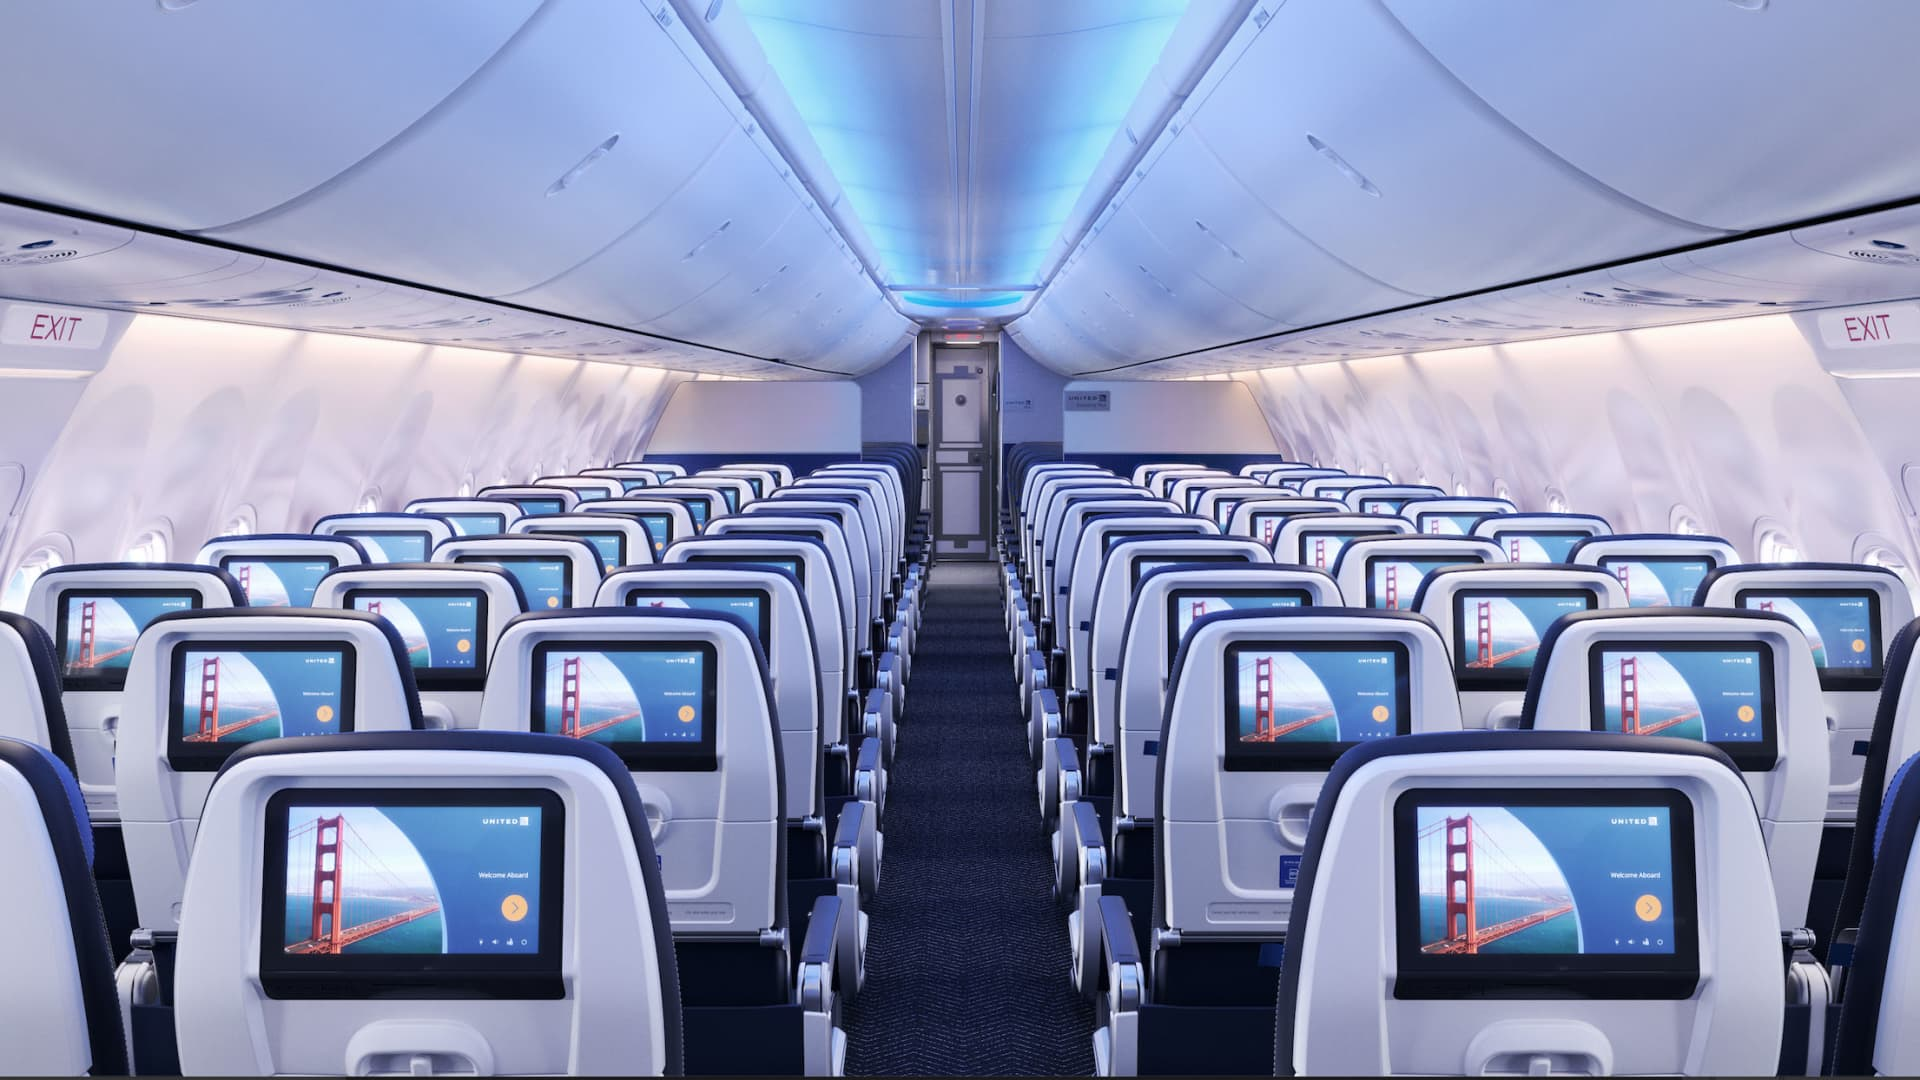 United plans to outfit new jetliners with seat-back screens.